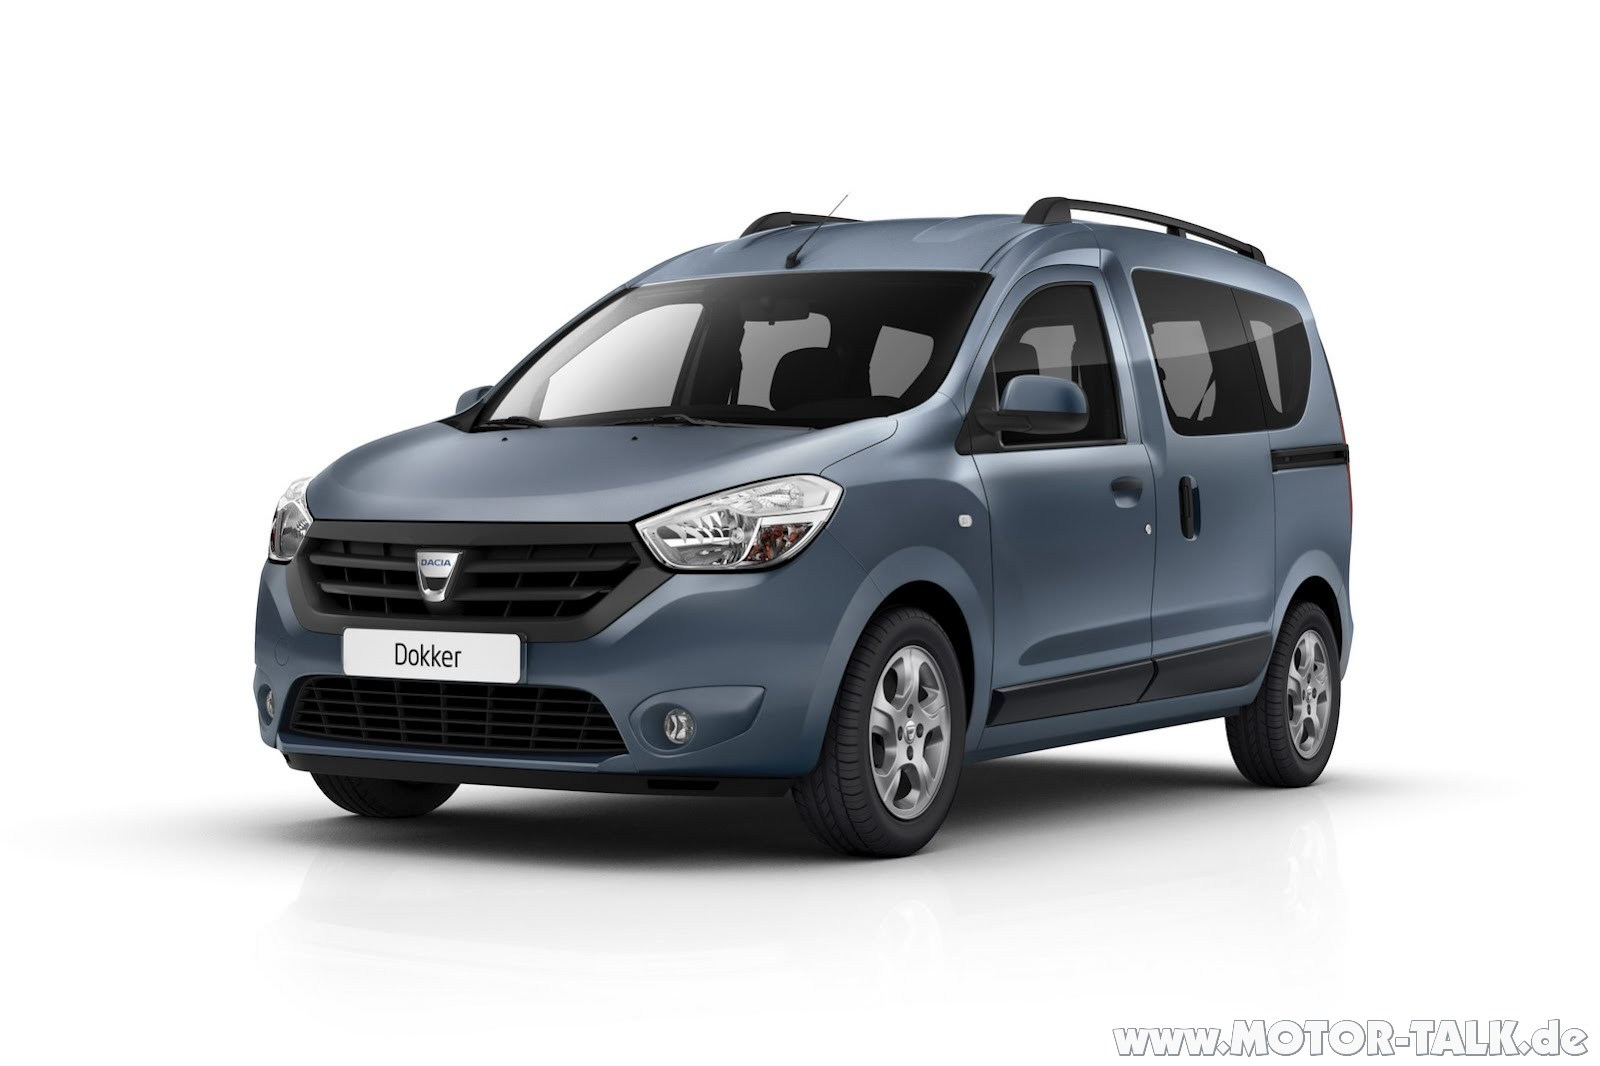 2013 dacia dokker 1 1 dacia lodgy der neue van dacia 205192286. Black Bedroom Furniture Sets. Home Design Ideas